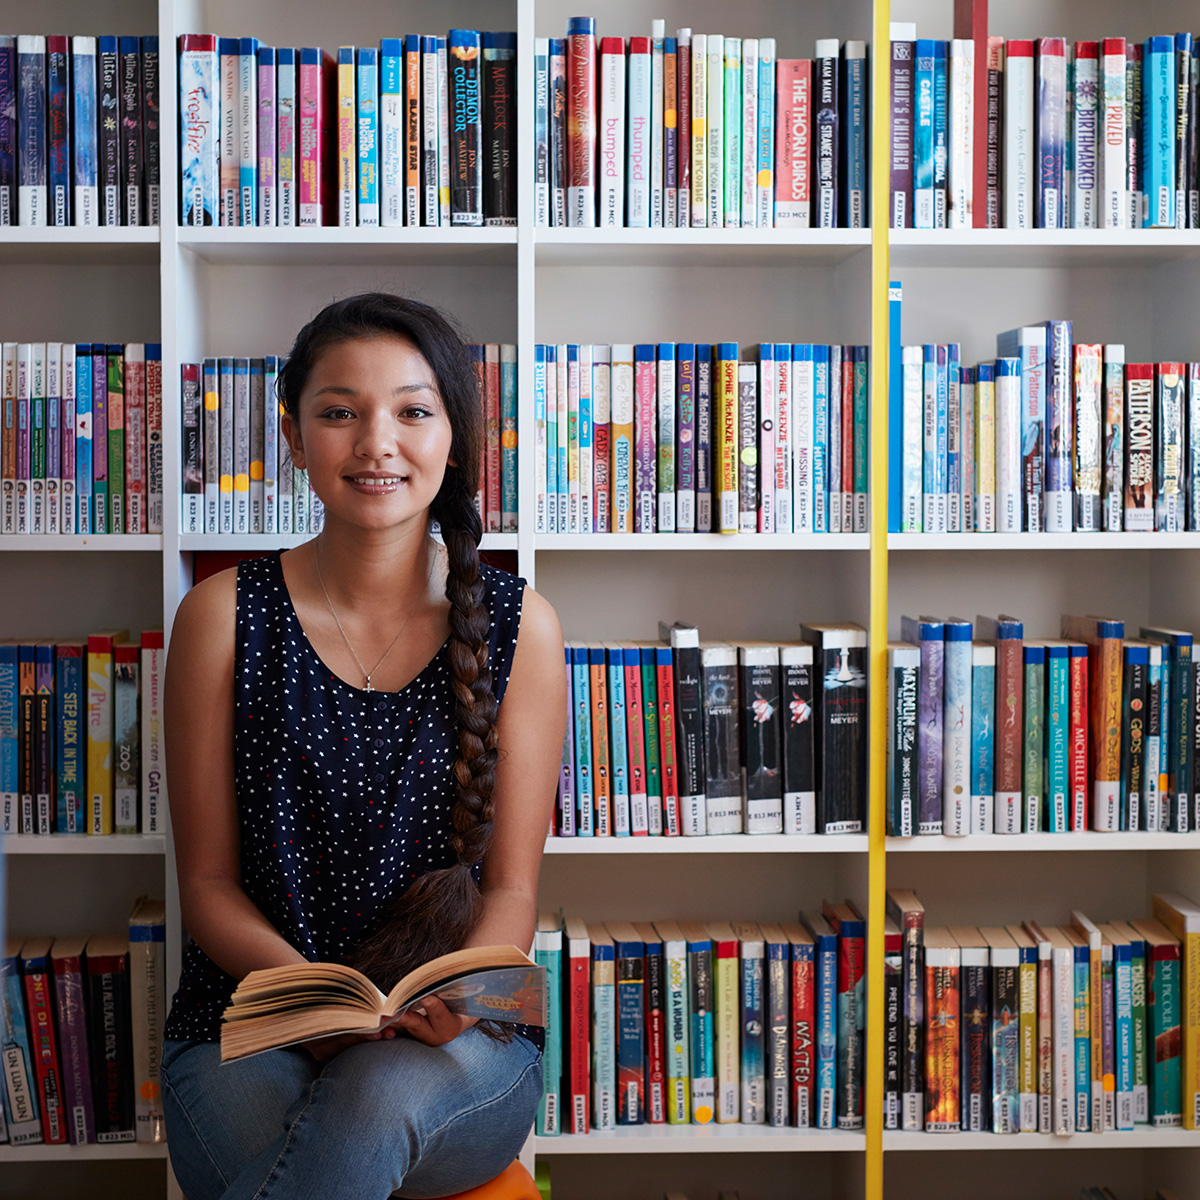 teen reading in front of bookshelf